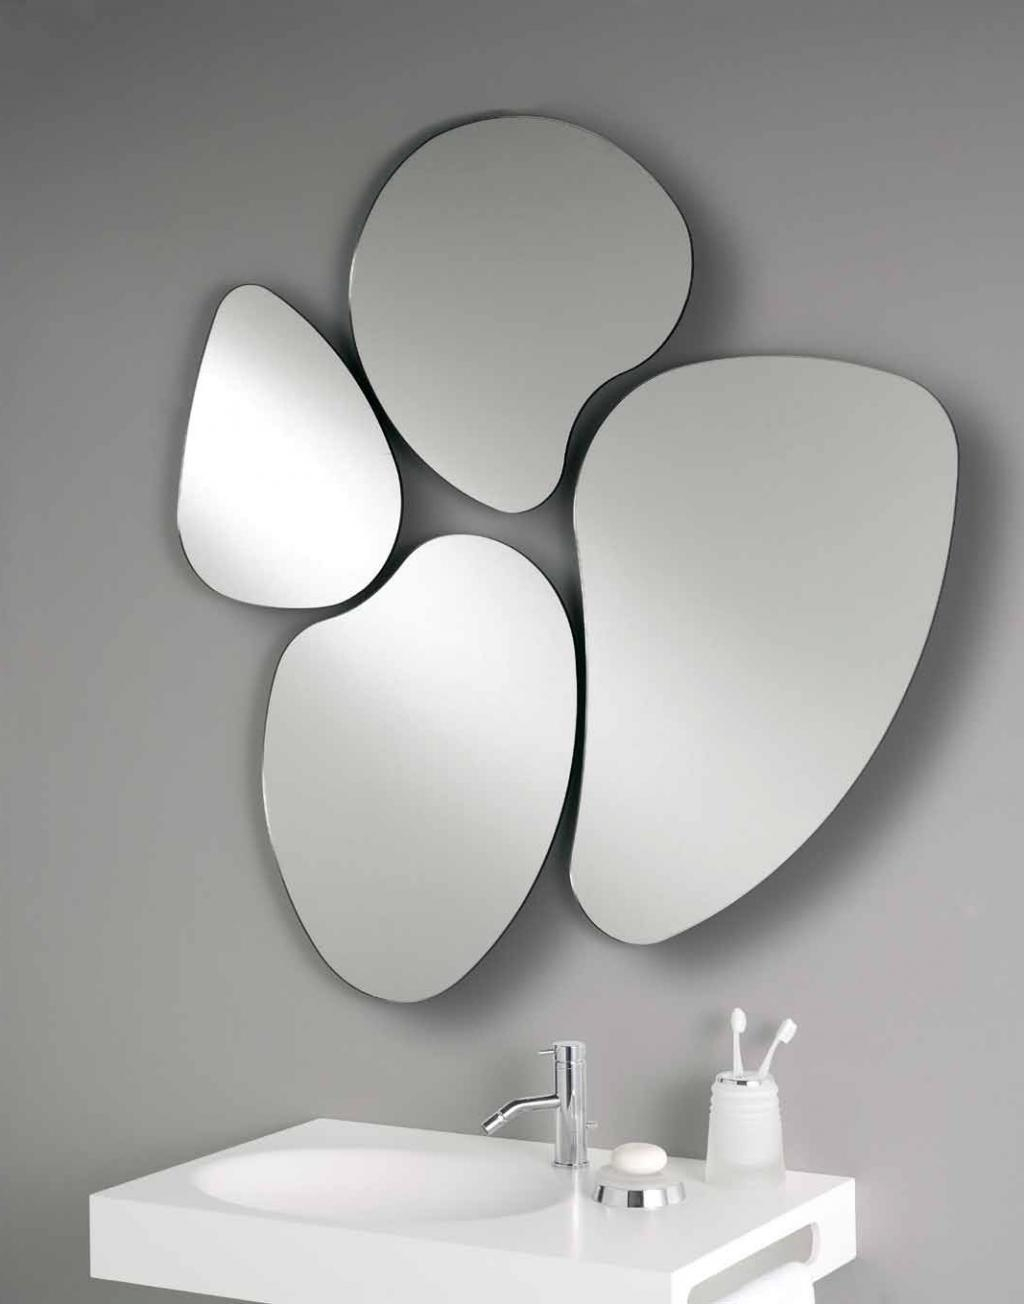 20 Gorgeous Diy Mirror Ideas Interesting Unique Mirror Ideas With Regard To Unusual Shaped Mirrors (Photo 3 of 15)